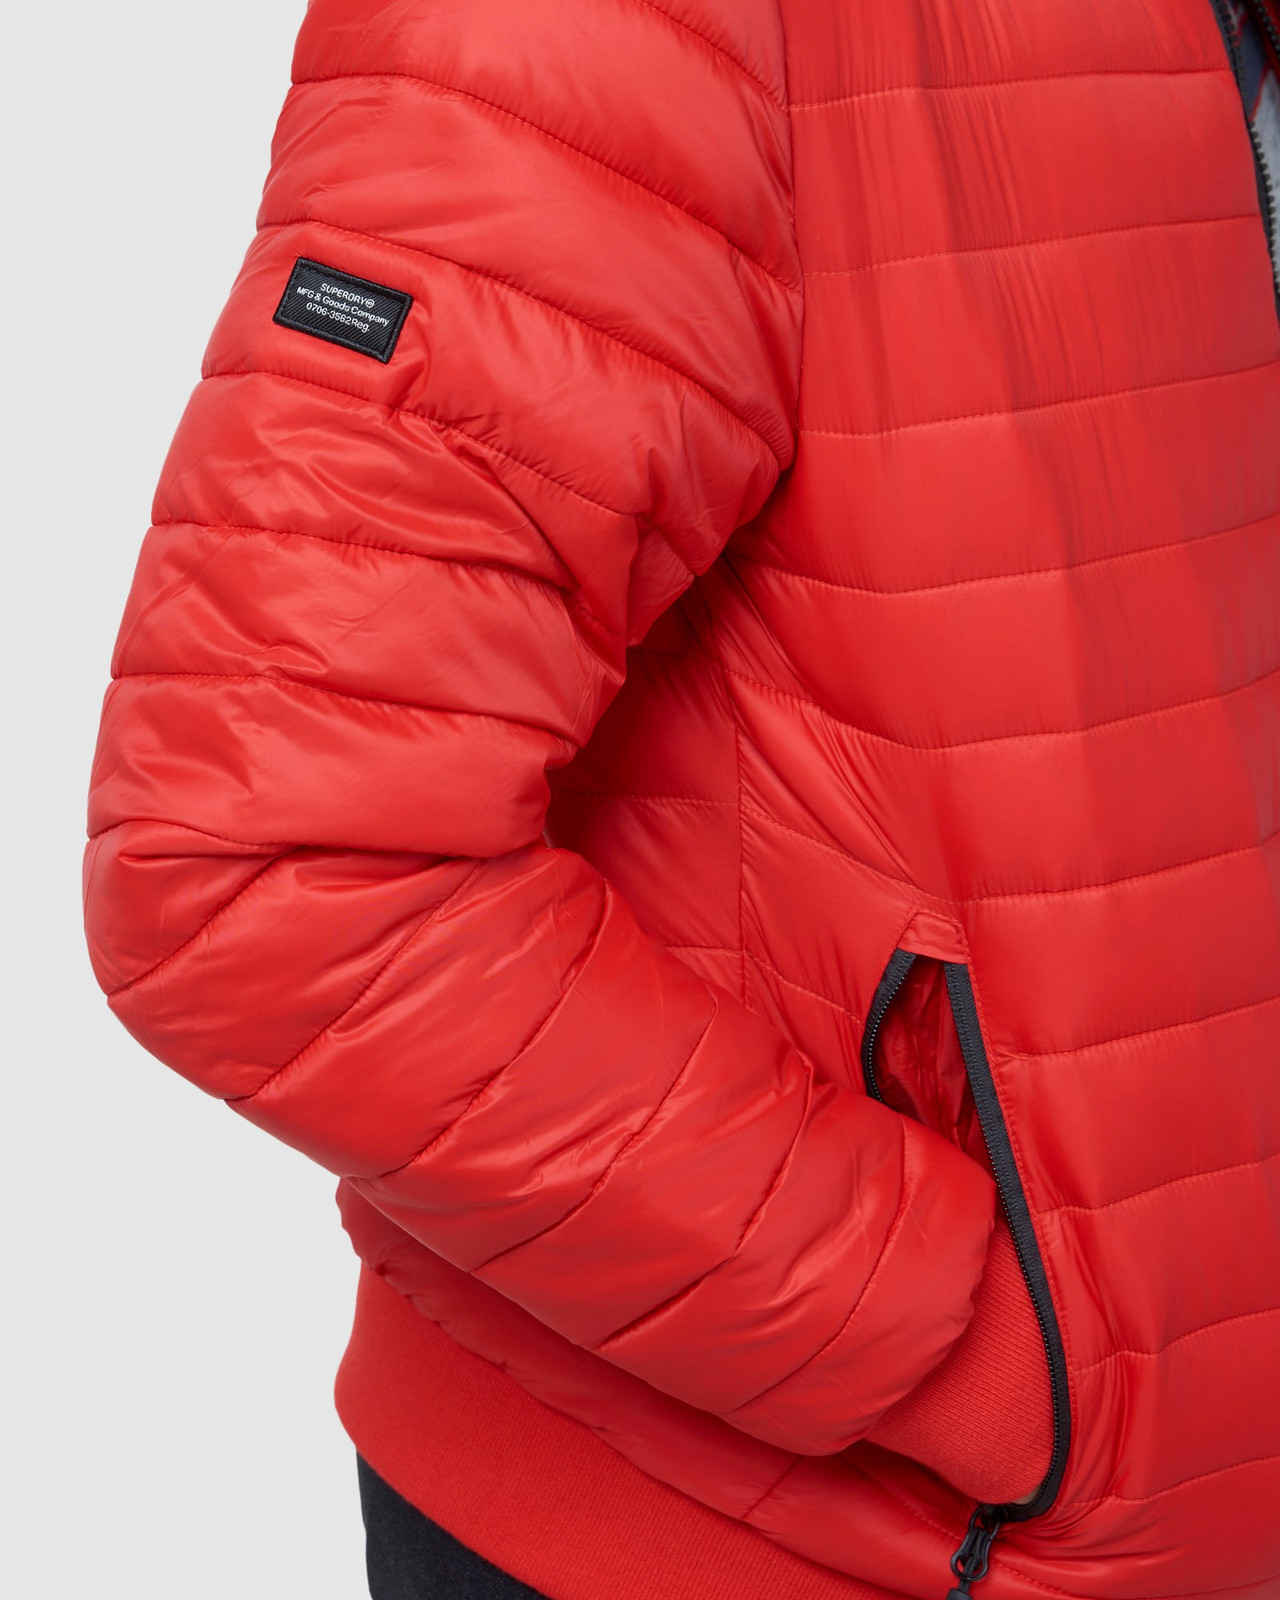 Superdry Mens FUJI BOMBER Red Puffer Jackets 13